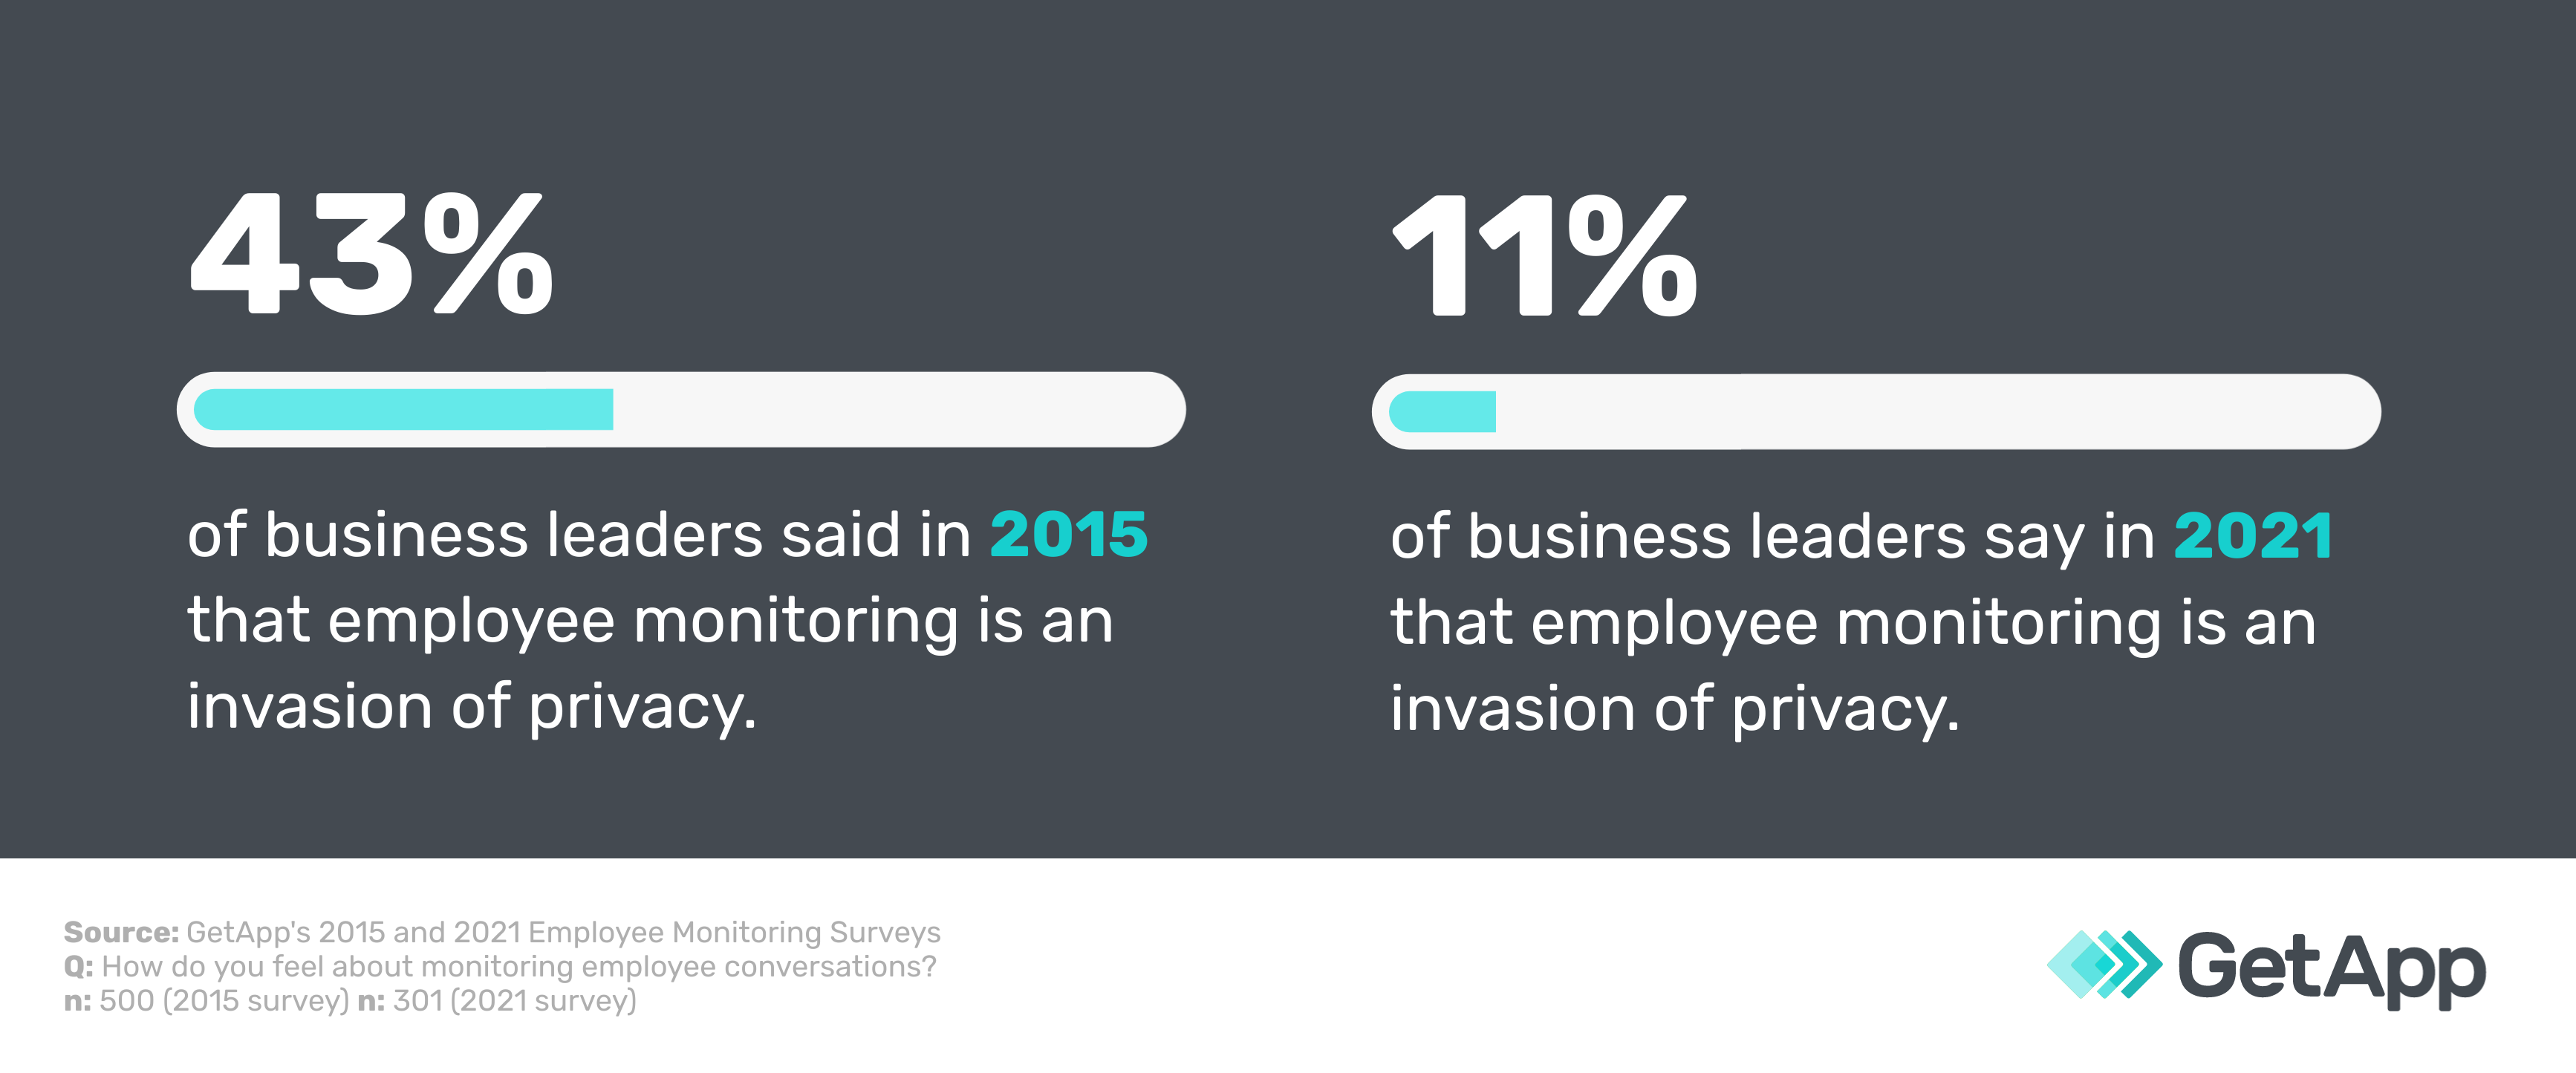 Percentage of business leaders who believe employee monitoring is an invasion of privacy in 2015 vs. 2021